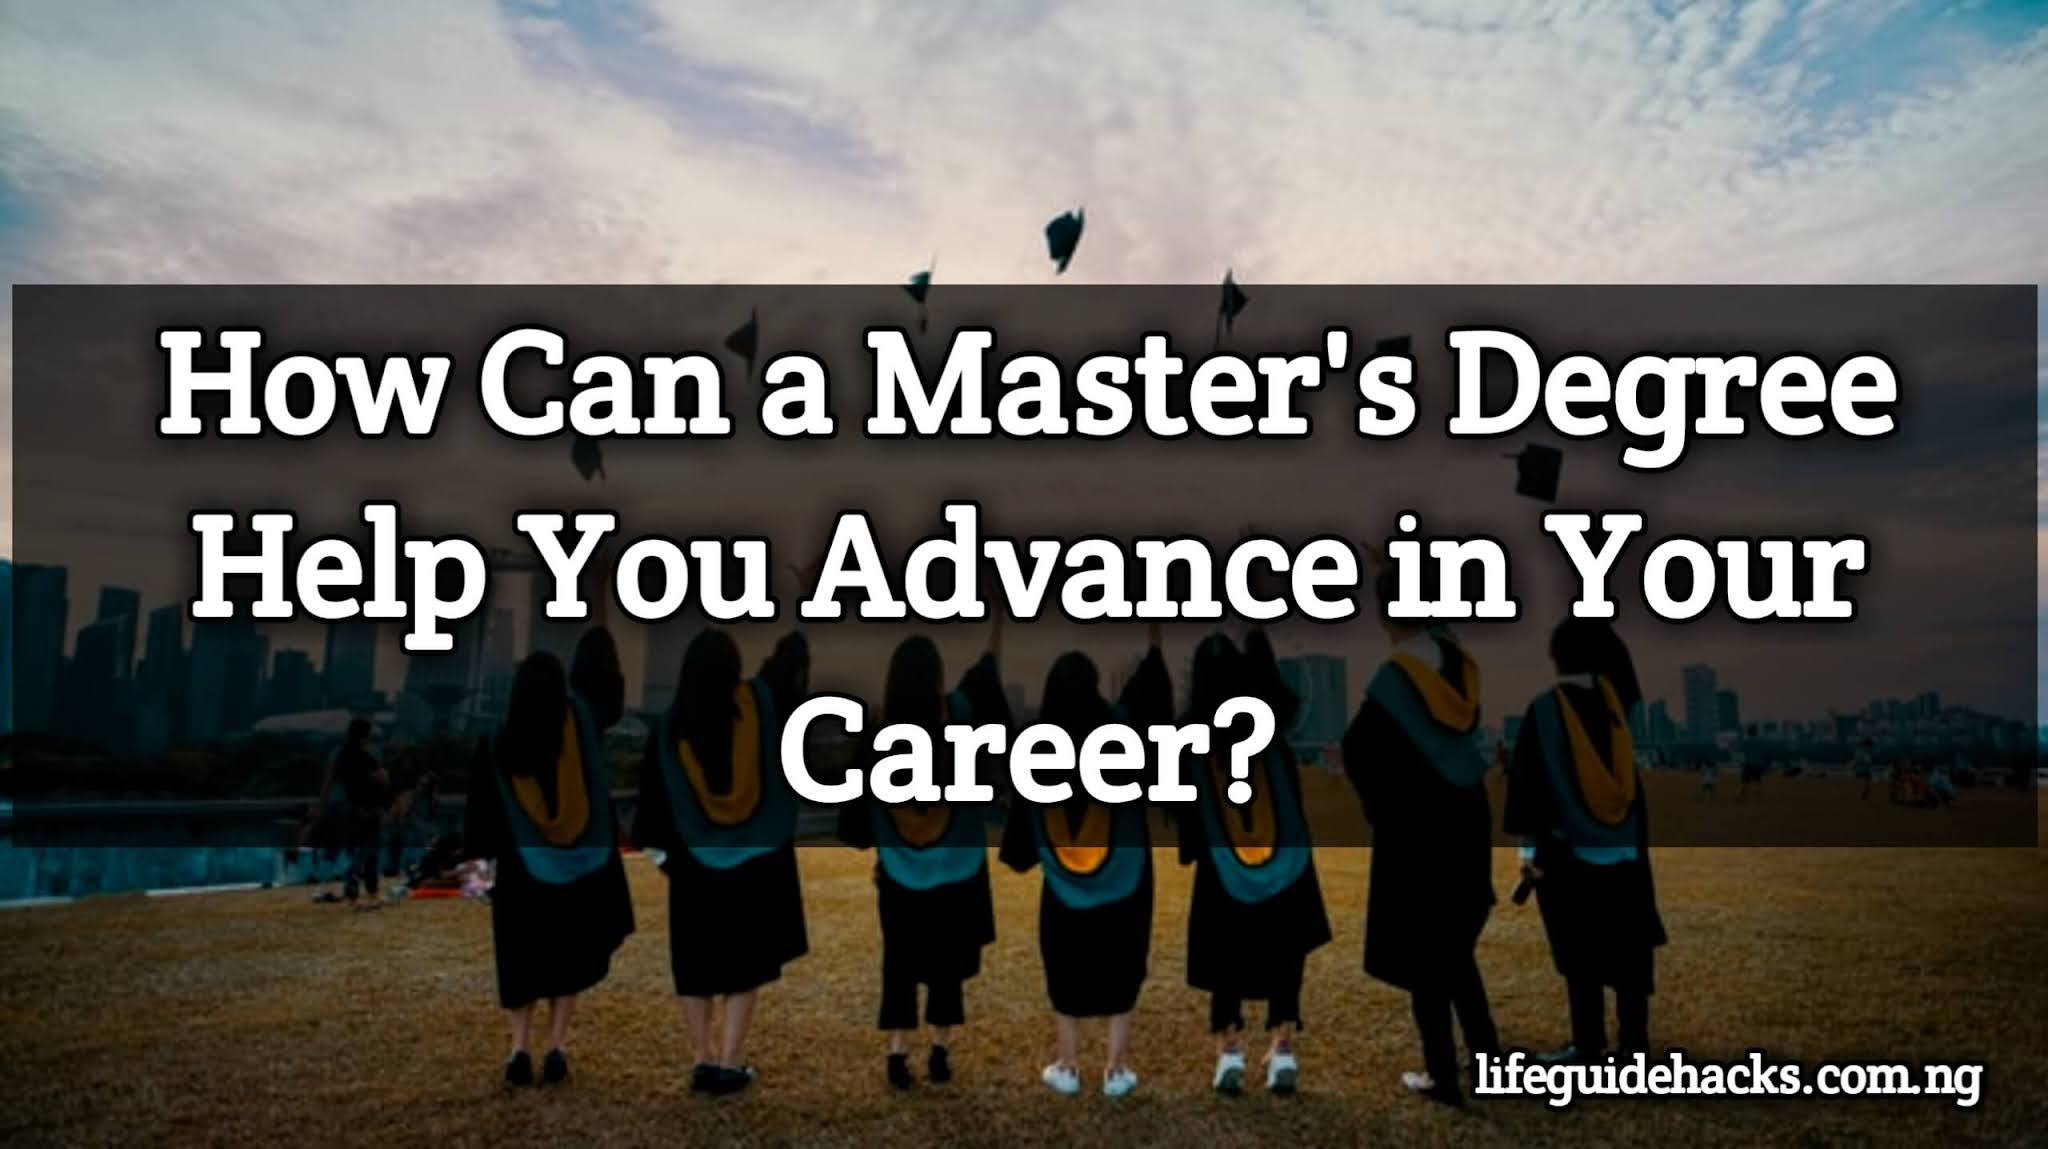 How Can a Master's Degree Help You Advance in Your Career?